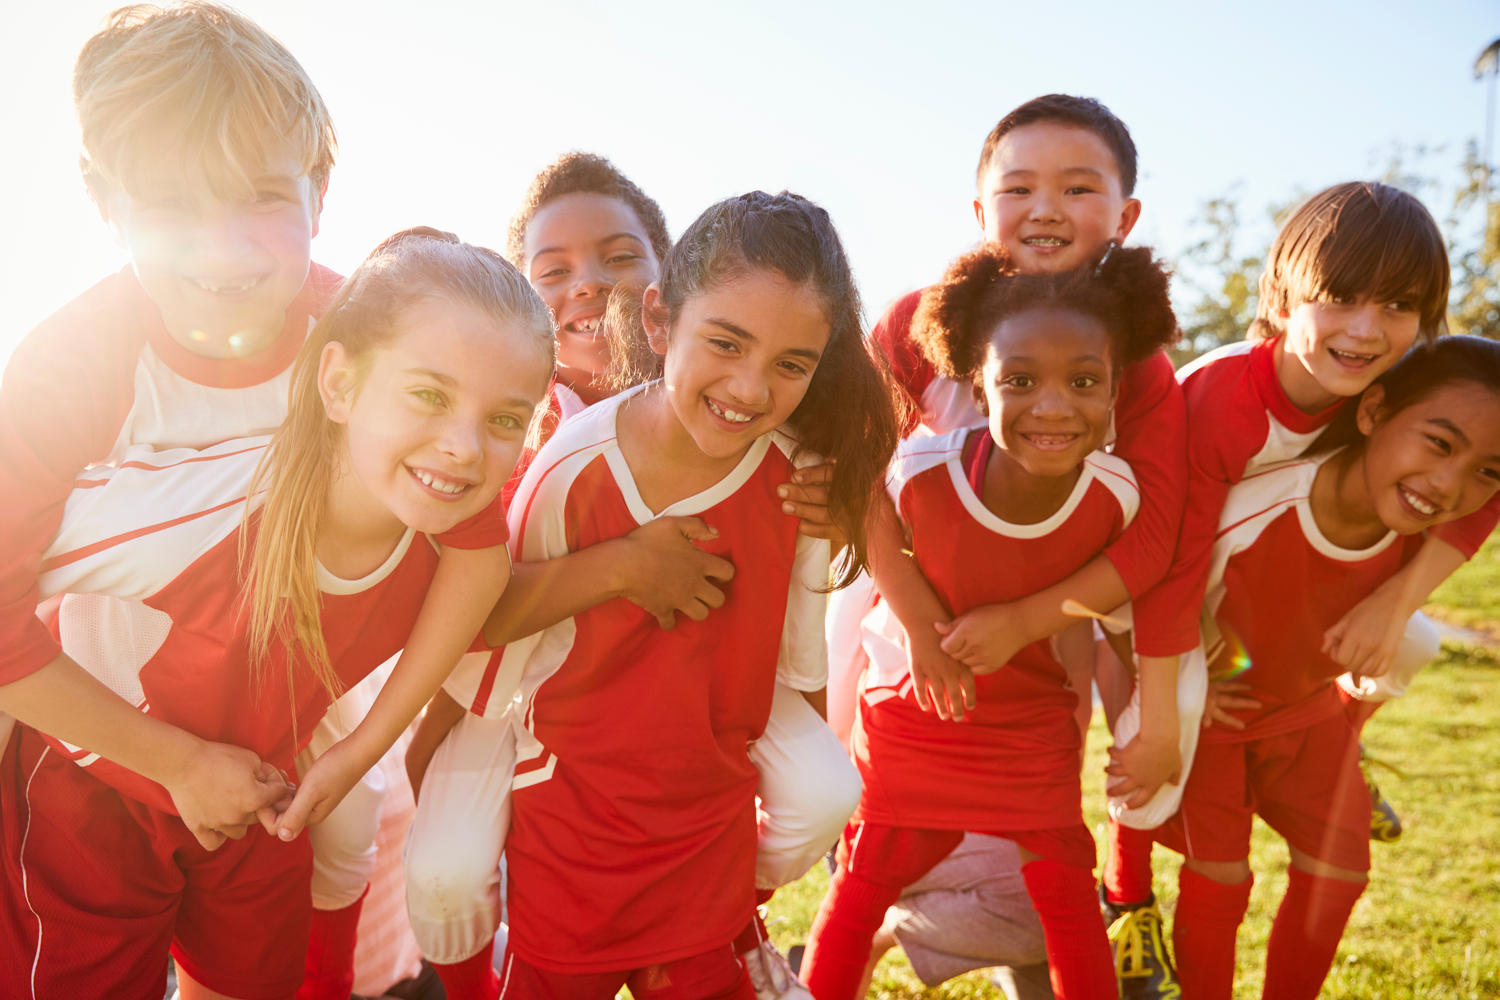 Getting a Sports Physical for Your Child